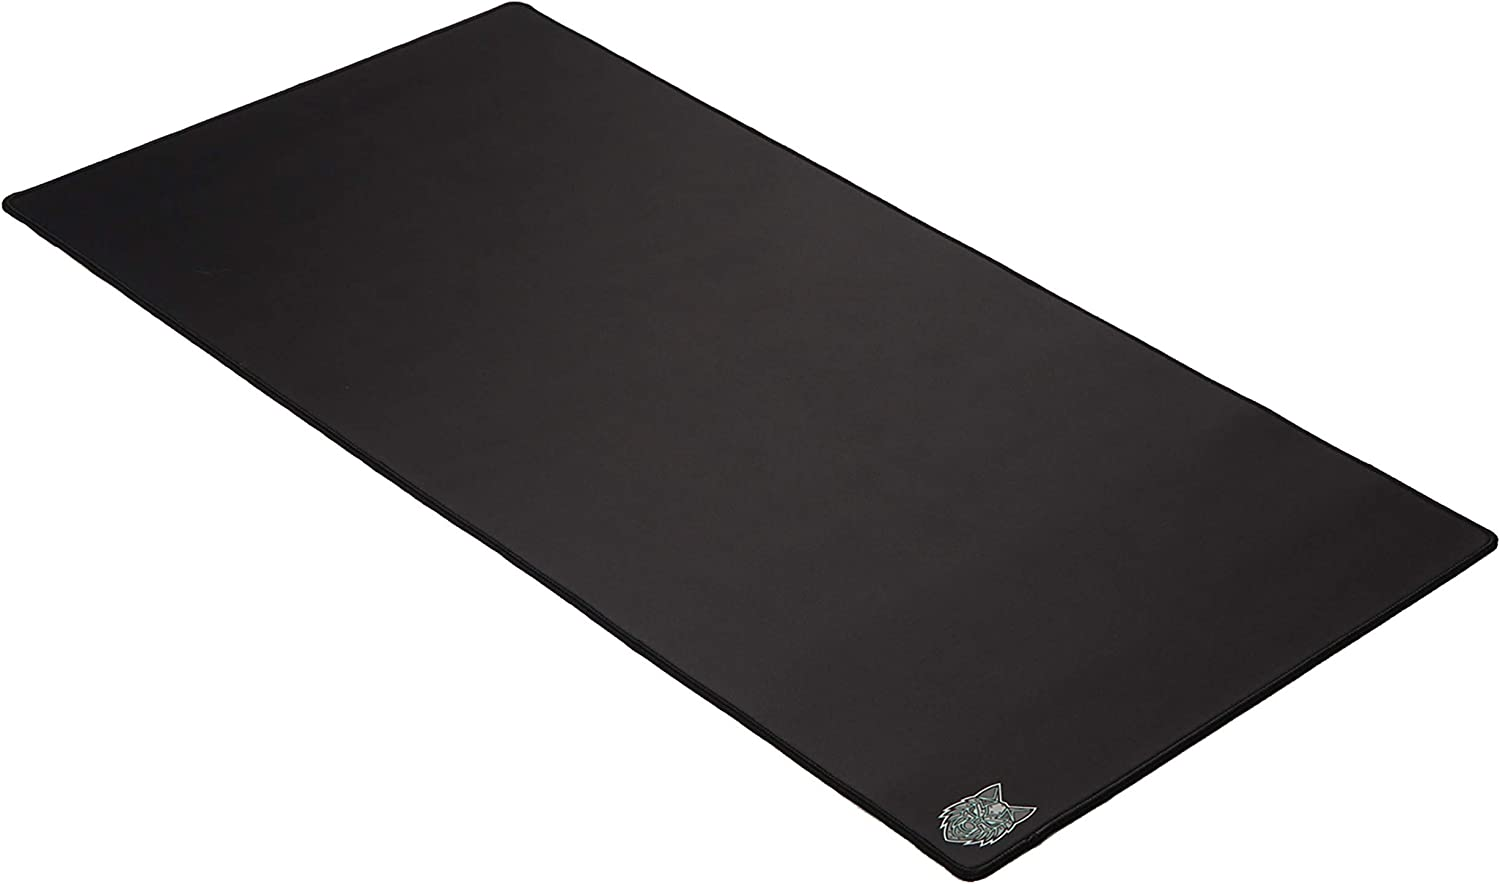 Large Desk Mat 36 x 18 x 0.16 SoloQ Extended Plus Size Custom Professional Gaming Mouse Pad Anti Slip Rubber Base Stitched Edges Extended Plus, Black with Blue Logo